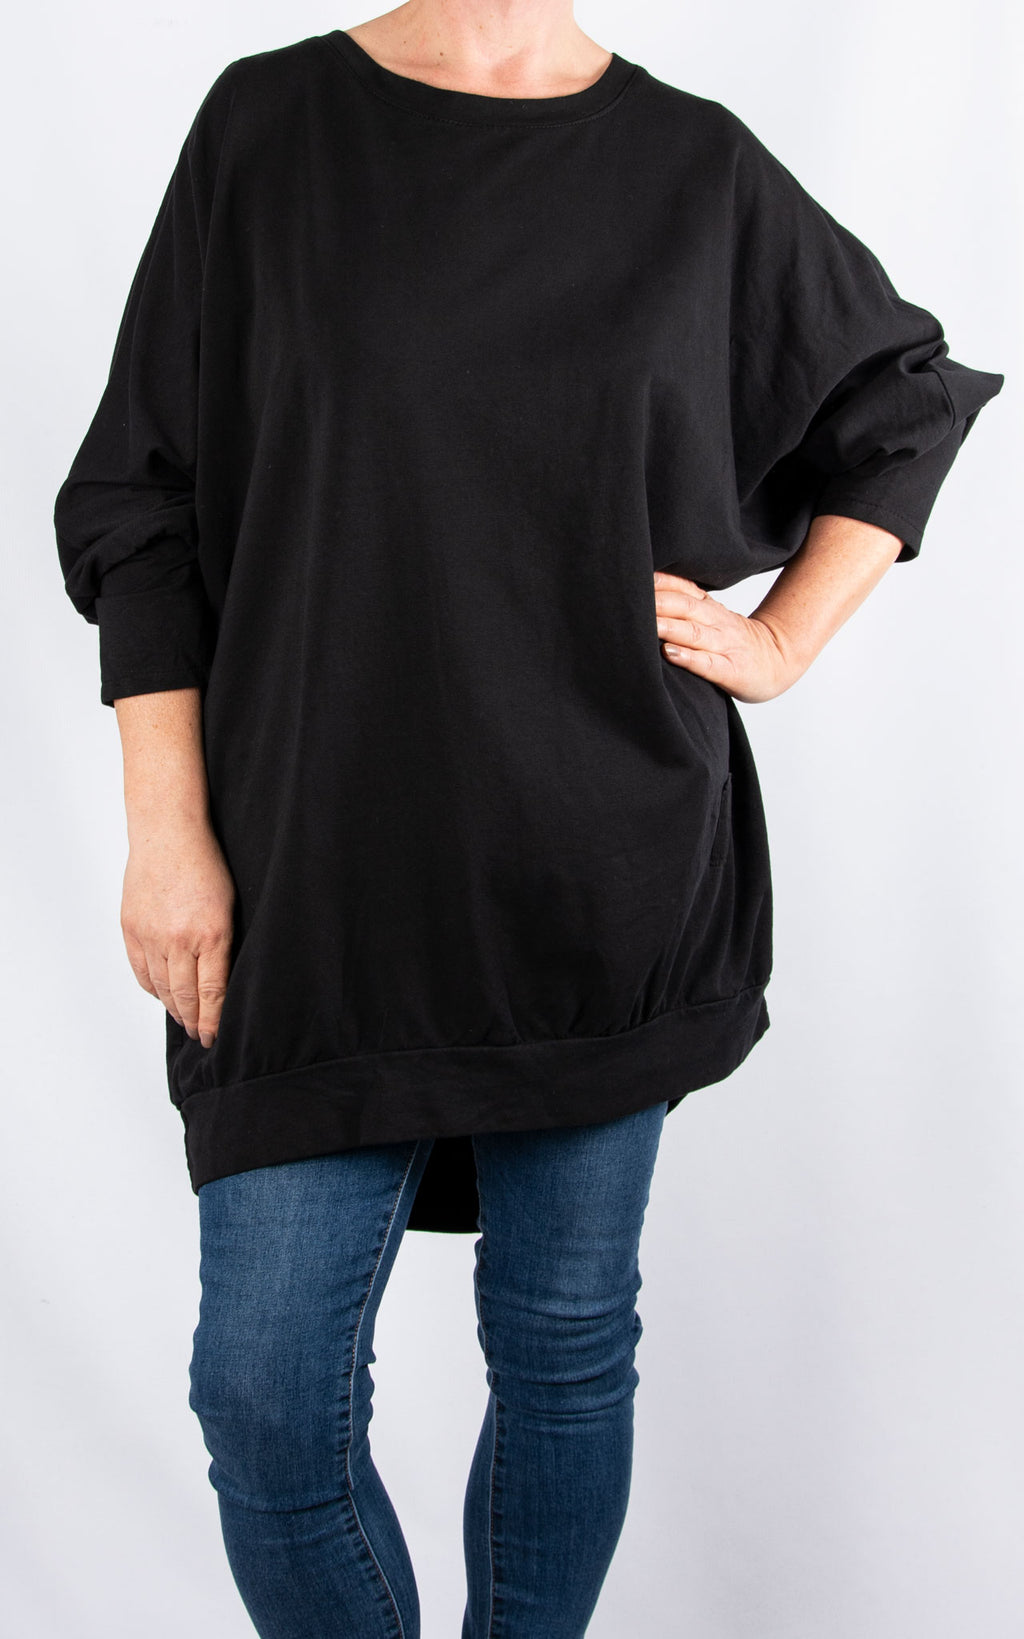 Zippy|Batwing Back Zip |Black